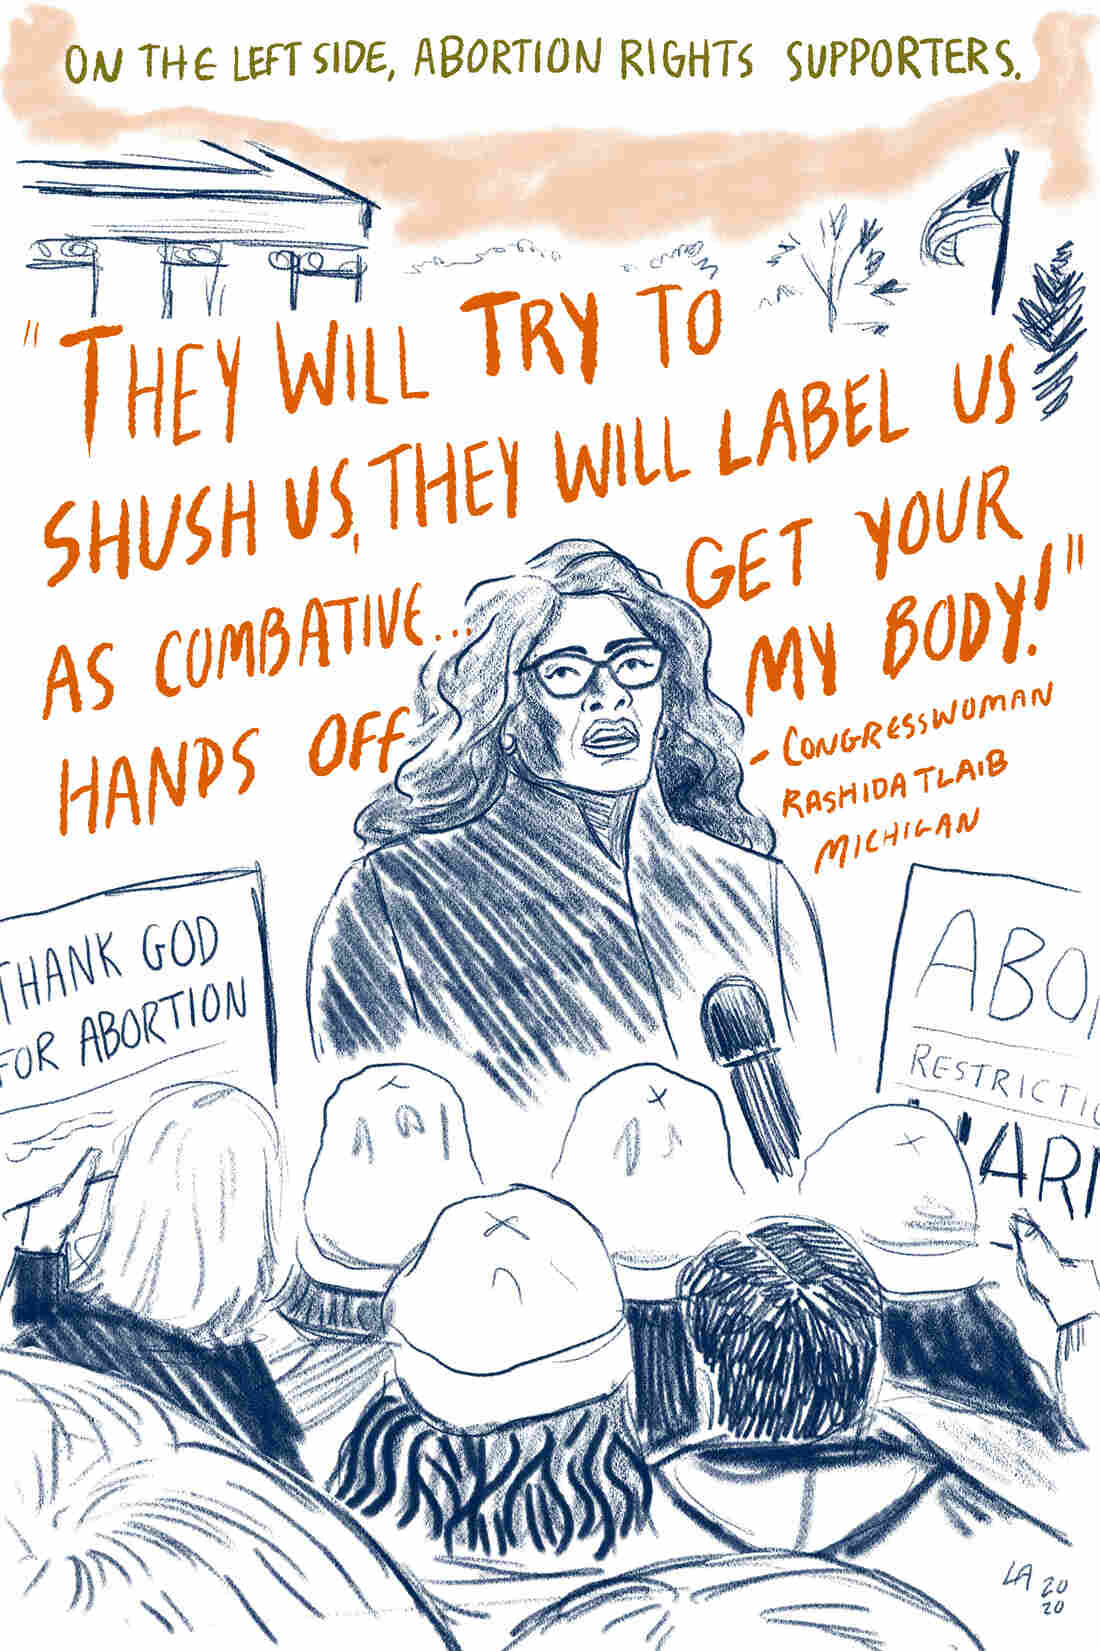 Congresswoman Tlaib from Mich.